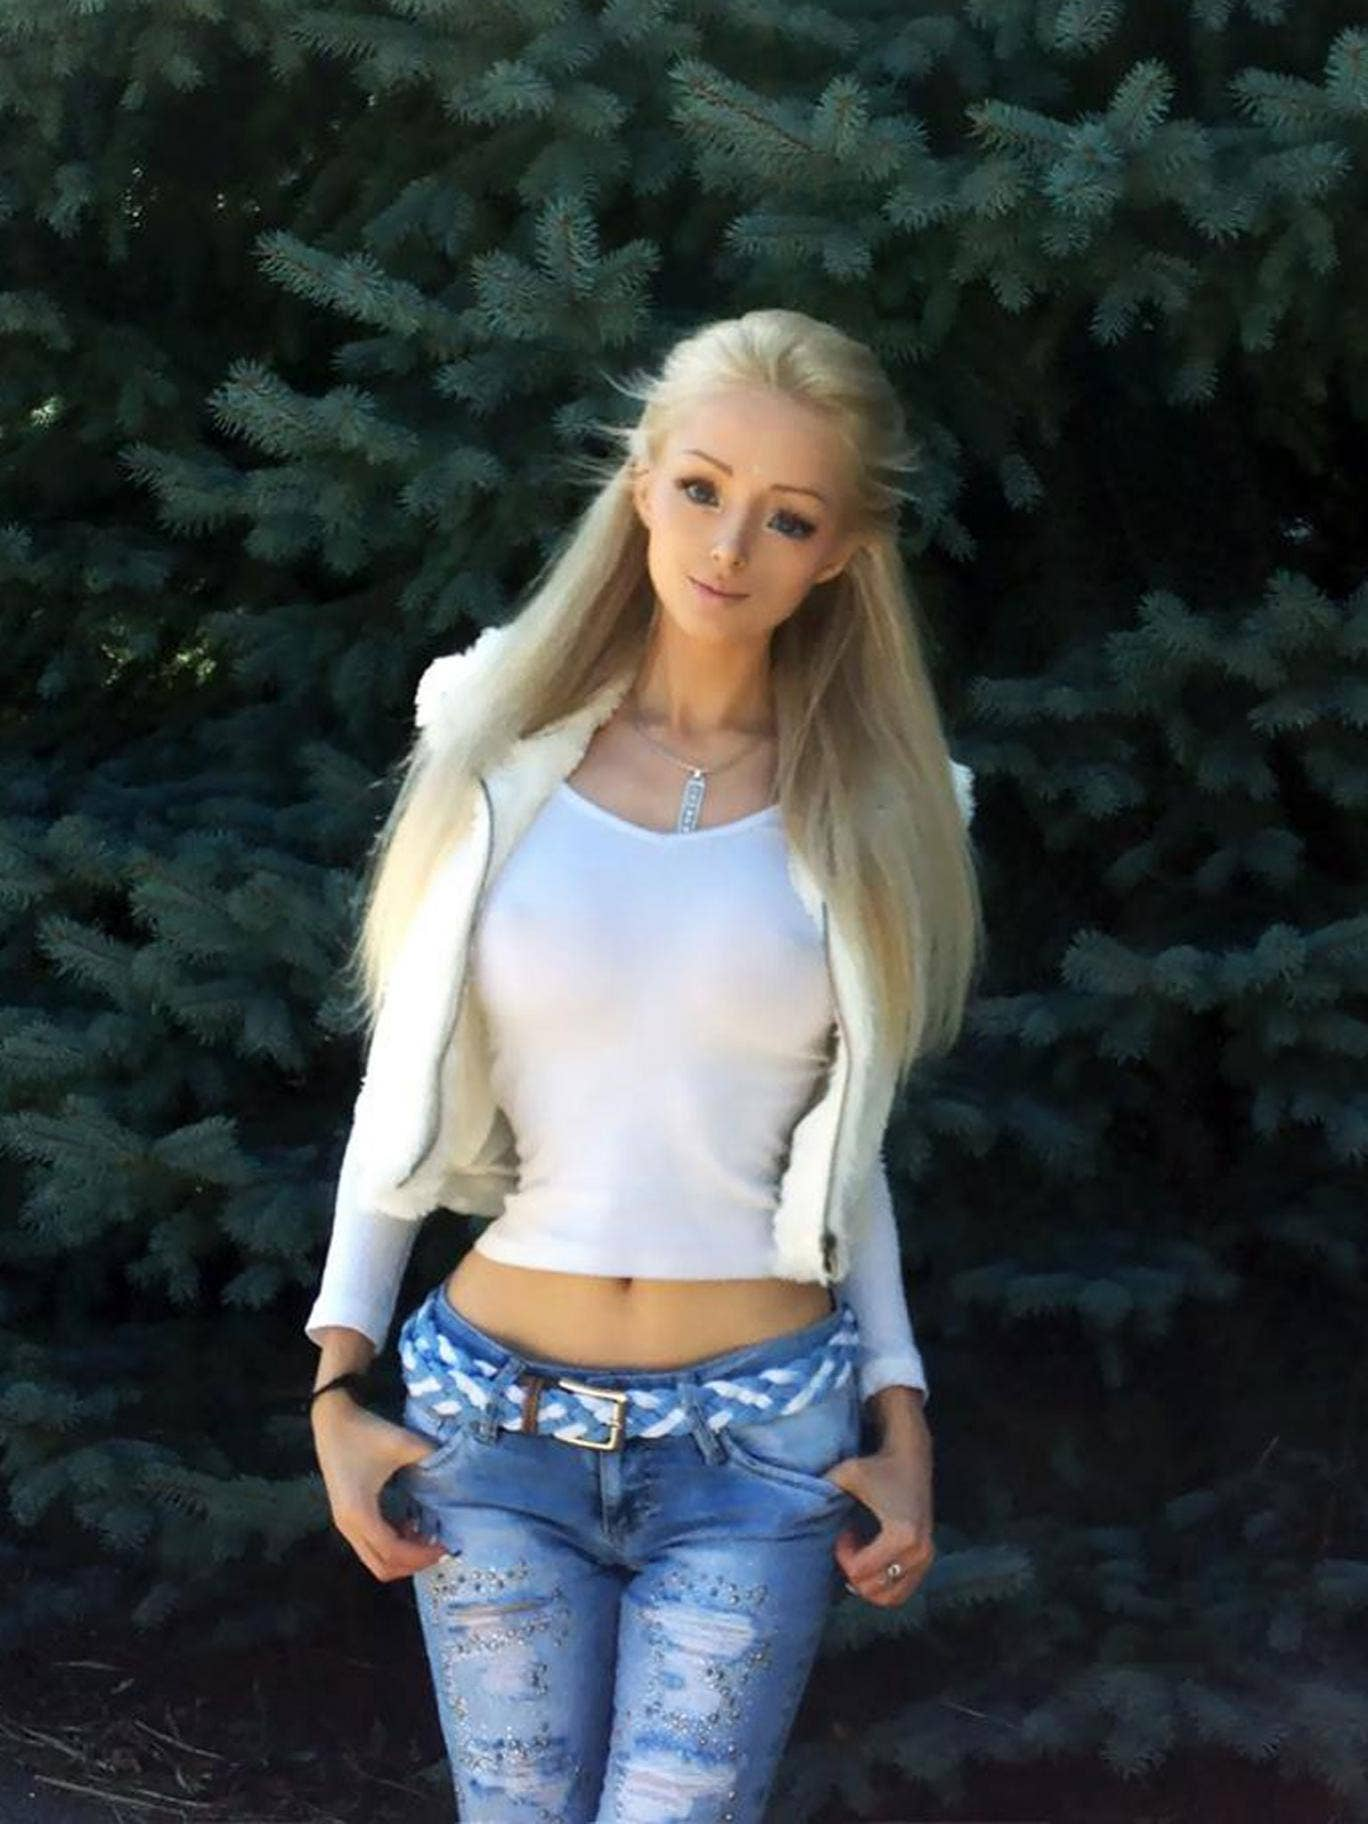 Valeriya Lukyanova has attracted controversy for her doll-like appearance